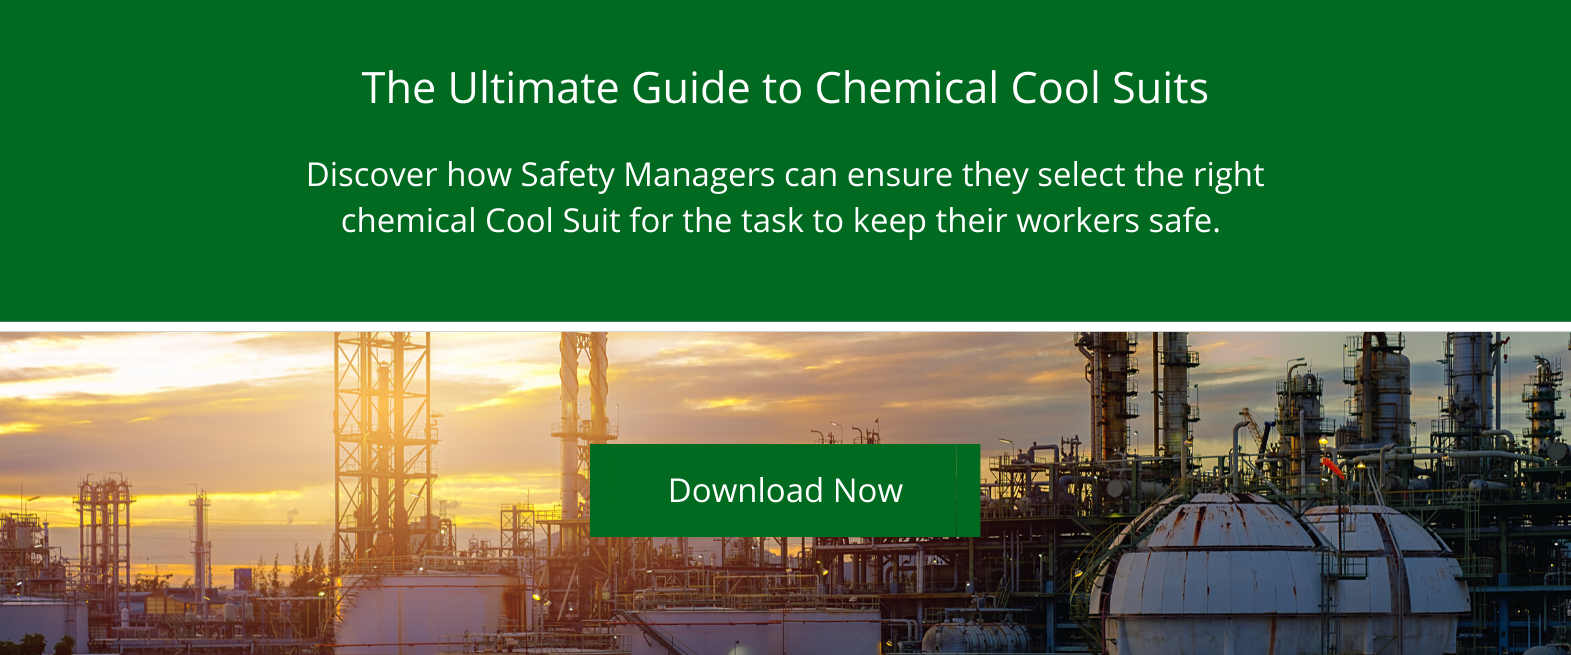 Guide to Chemical Cool Suits